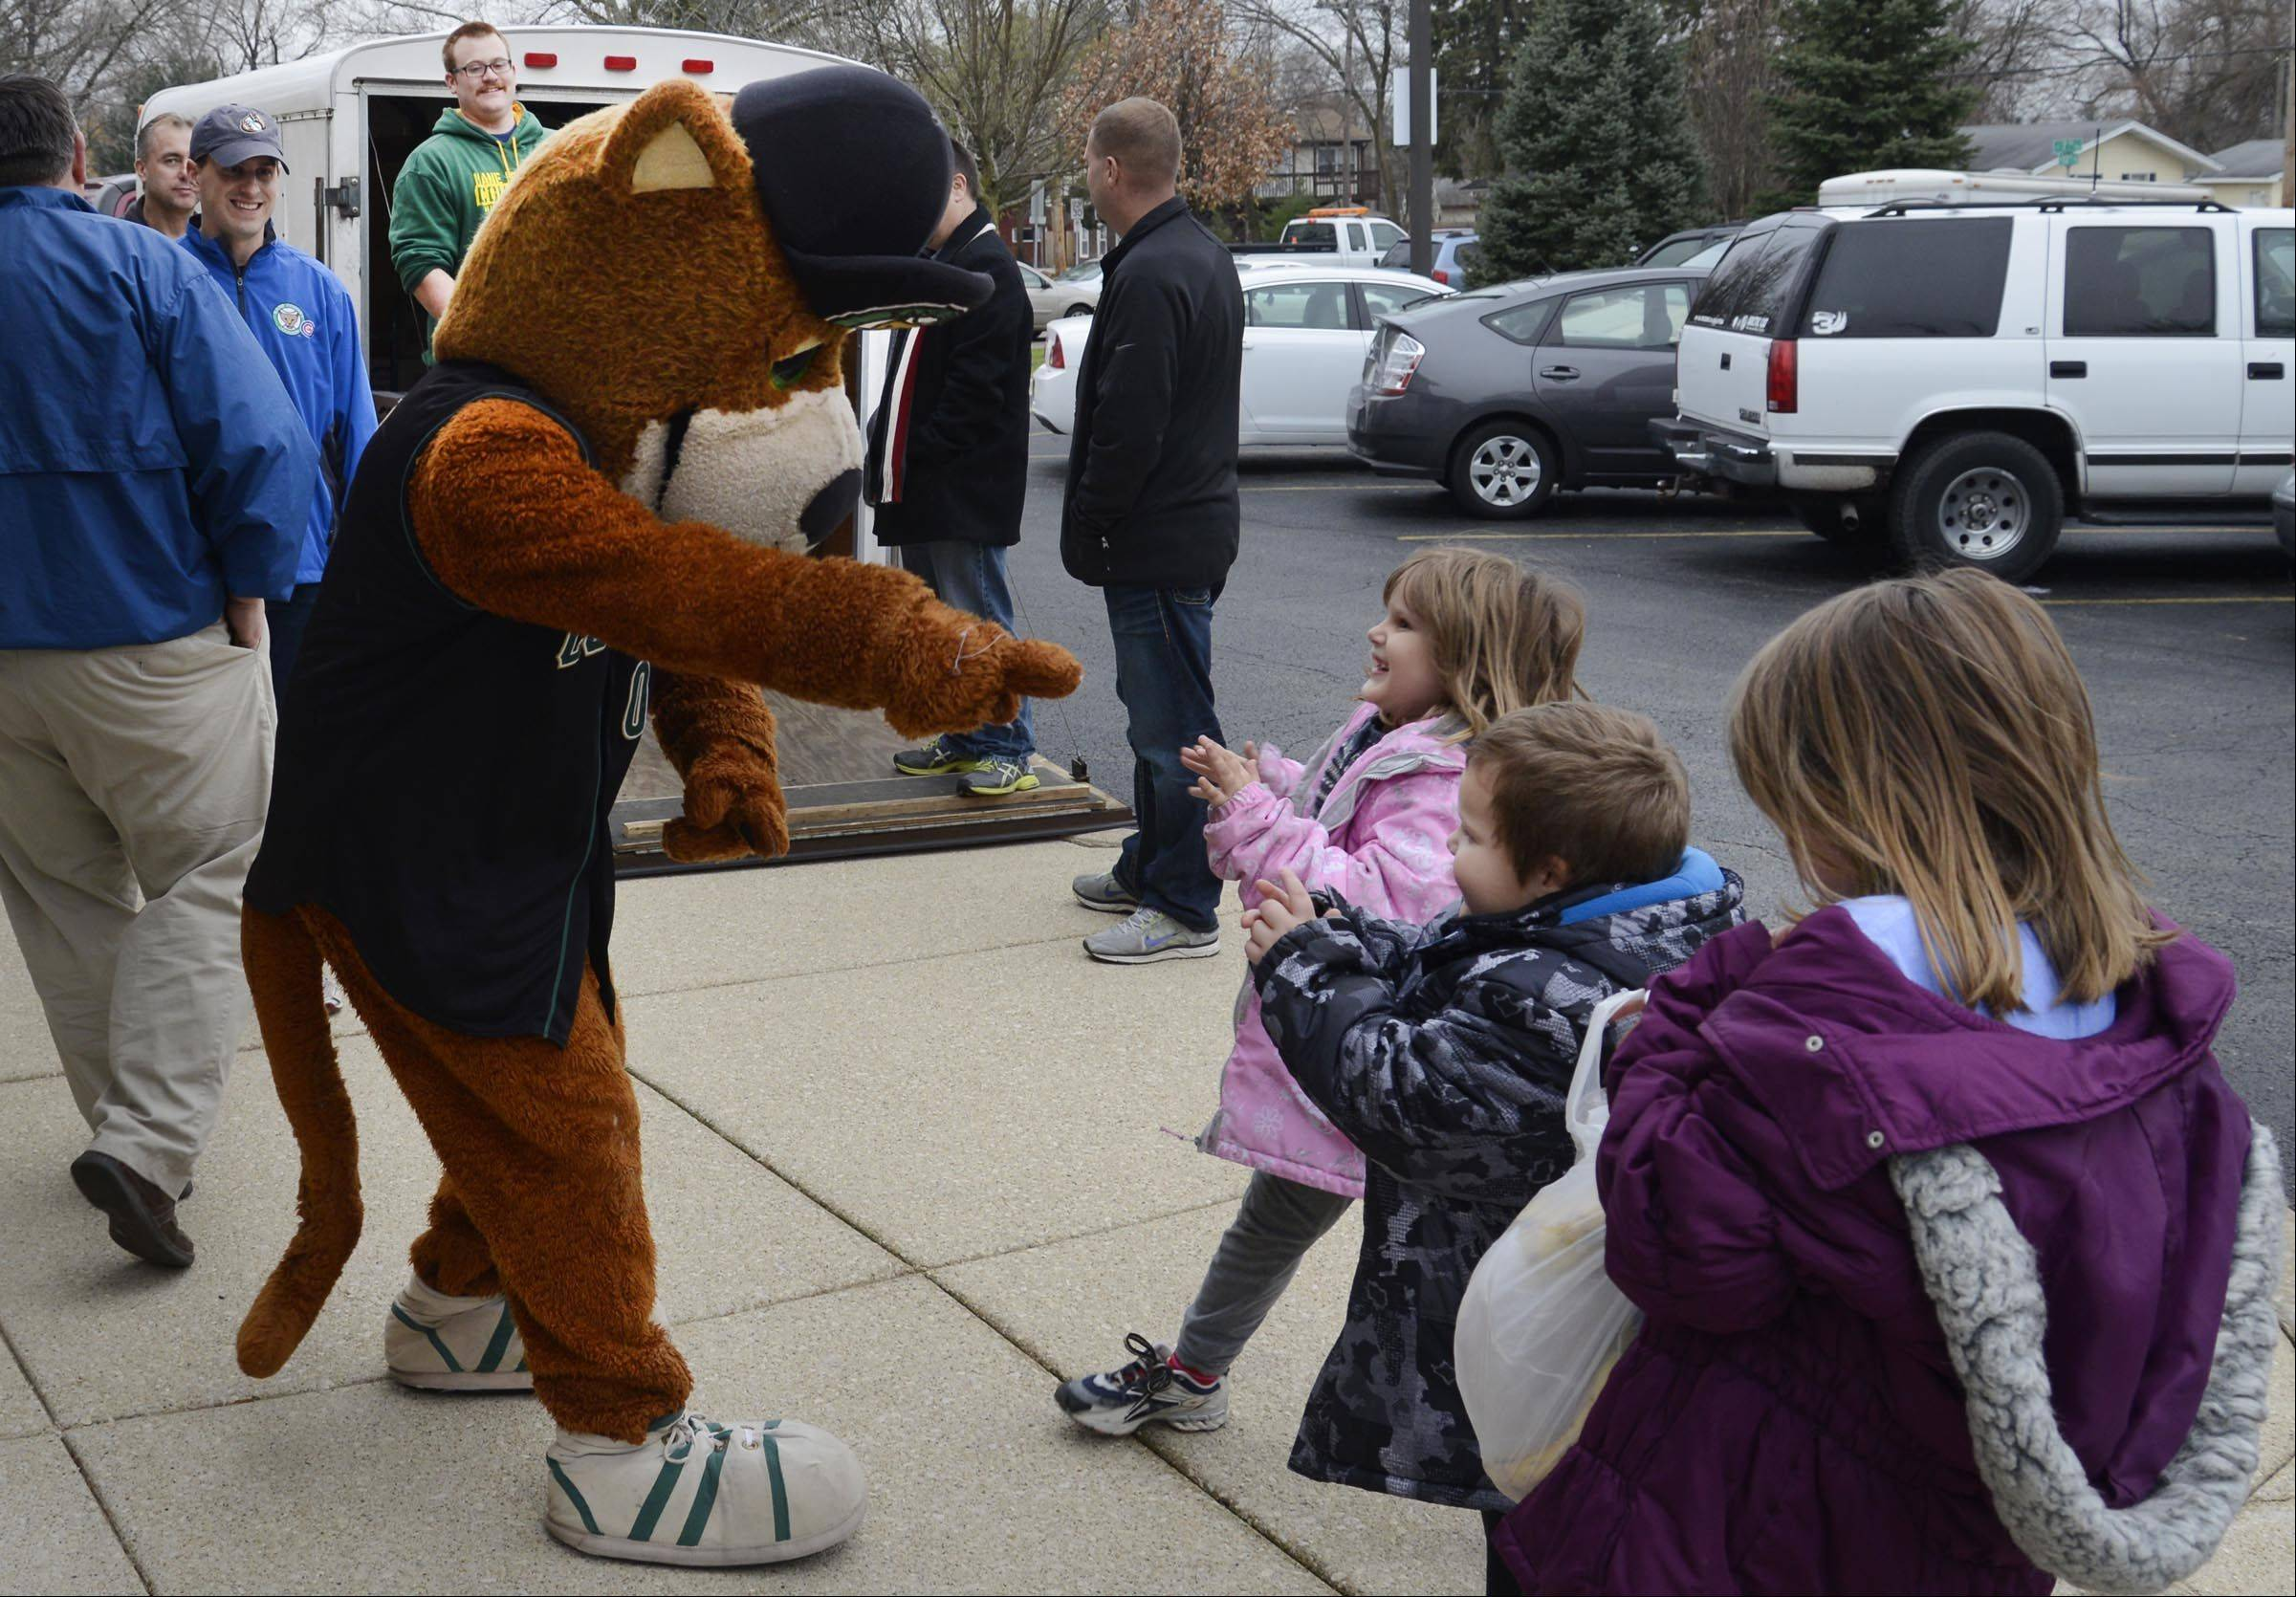 Kane County Cougars mascot Ozzie T. Cougar goofs around with children as the baseball team's staff assists the Salvation Army Tri-City corps in handing out frozen turkeys and chickens to more than 300 families in need Thursday at the Joe K. Anderson Community Center in St. Charles.